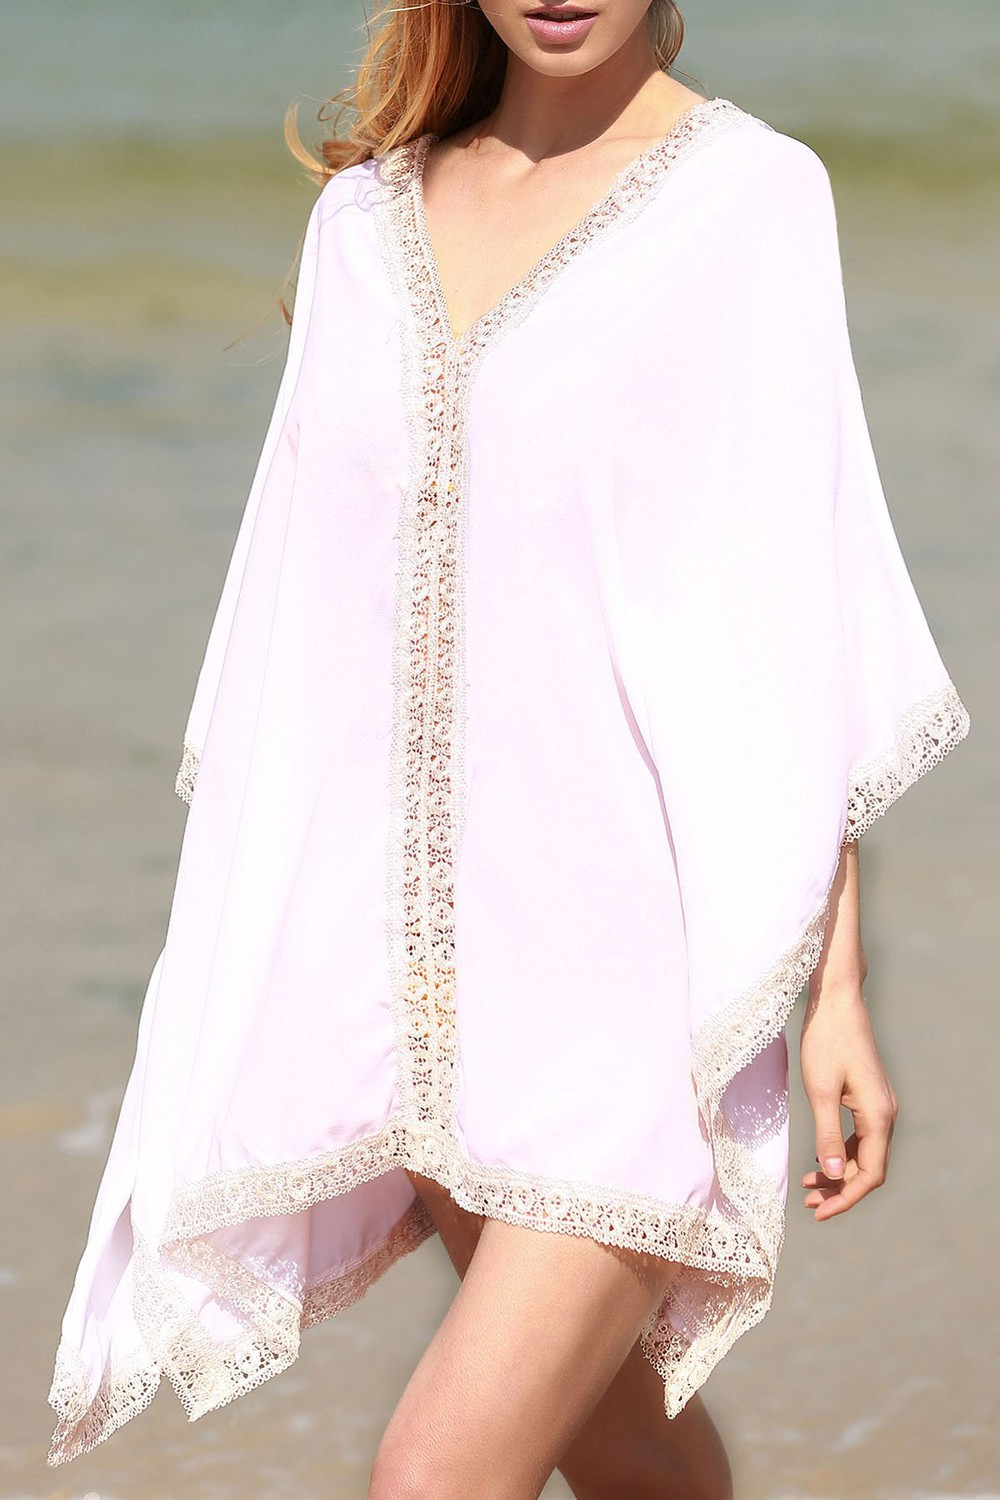 Zaful Solid Color Lace Border V Neck Bat-Wing Sleeve Dress in white